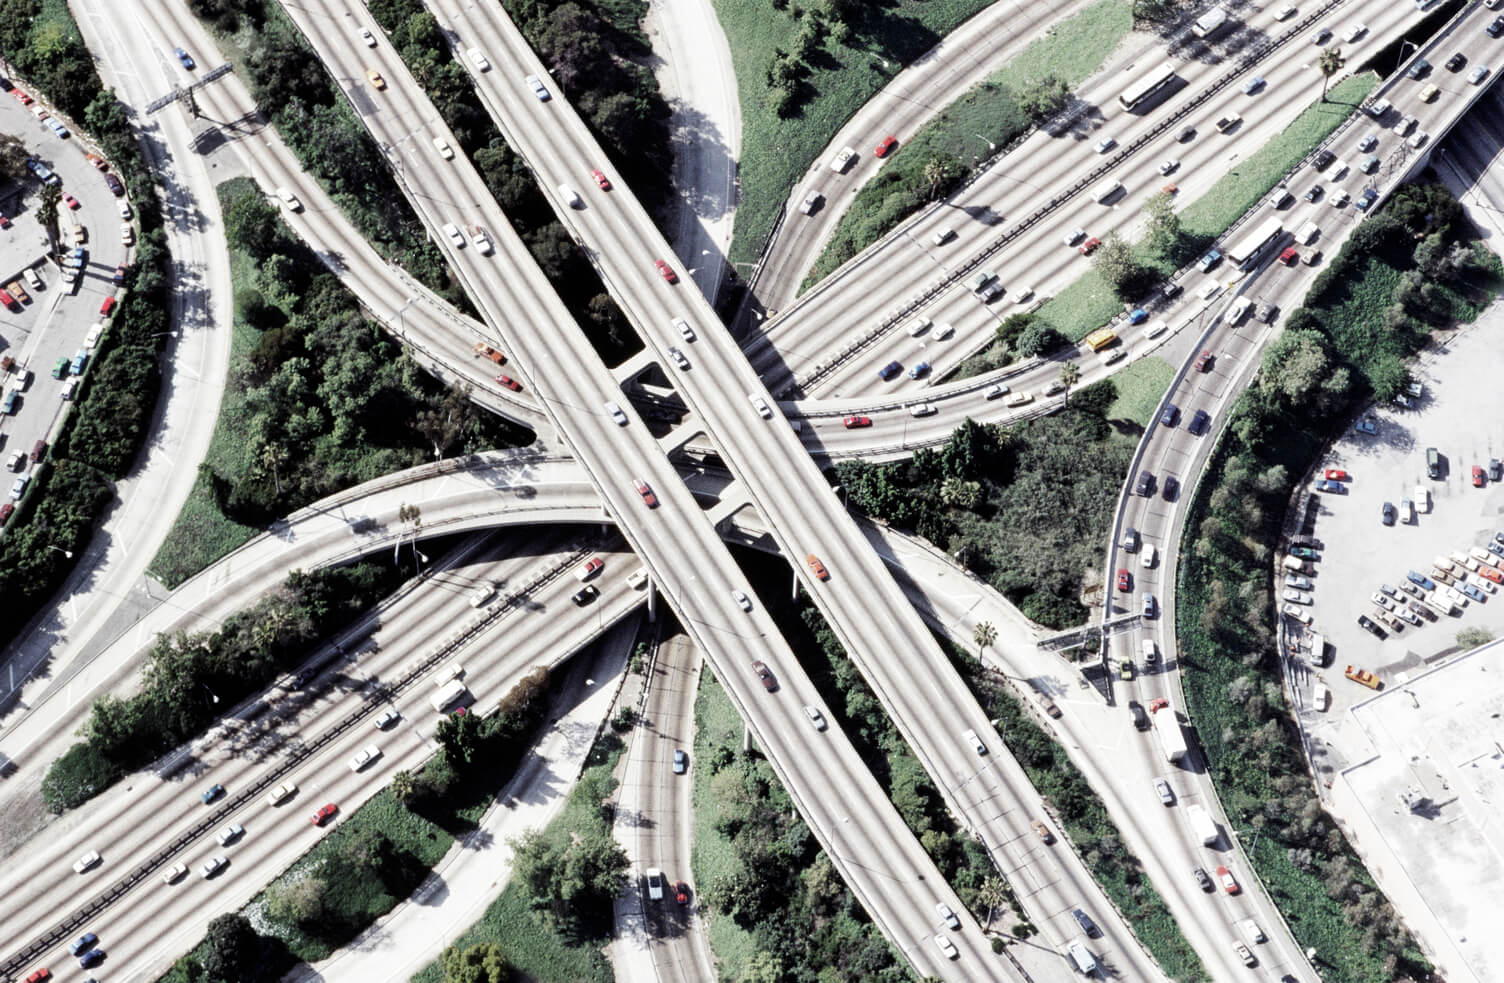 Freeway interchange from above.